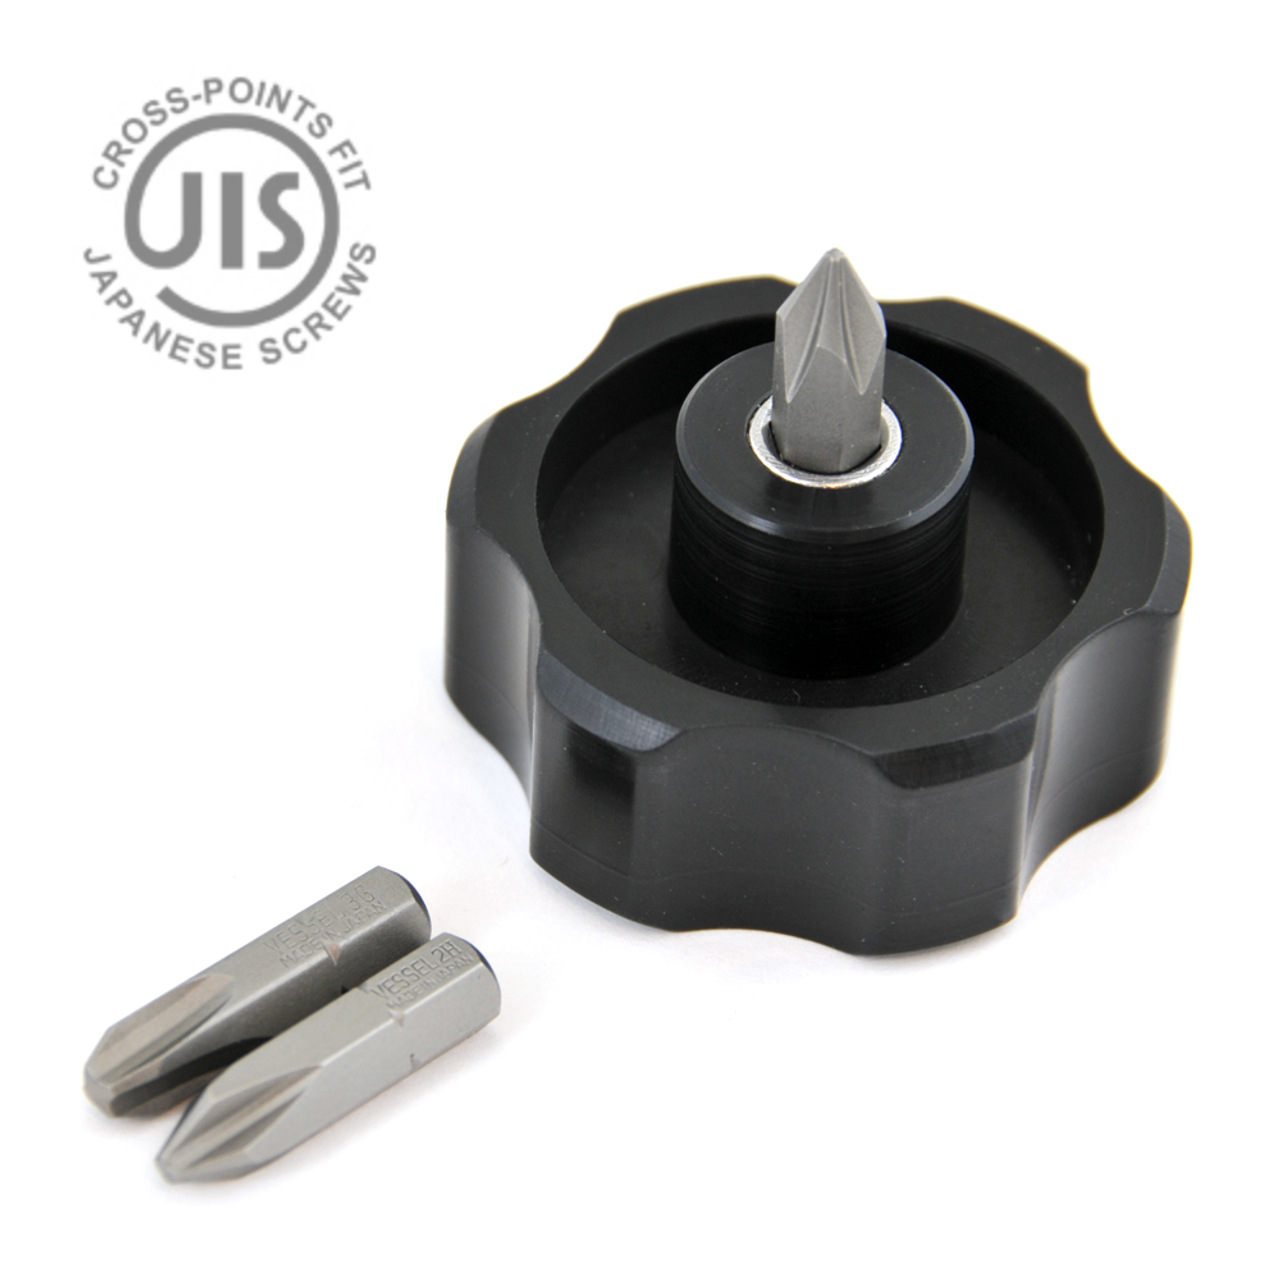 3-piece JIS Insert Bits (VES-A16621) fit perfect in the Wits' End Handwheel